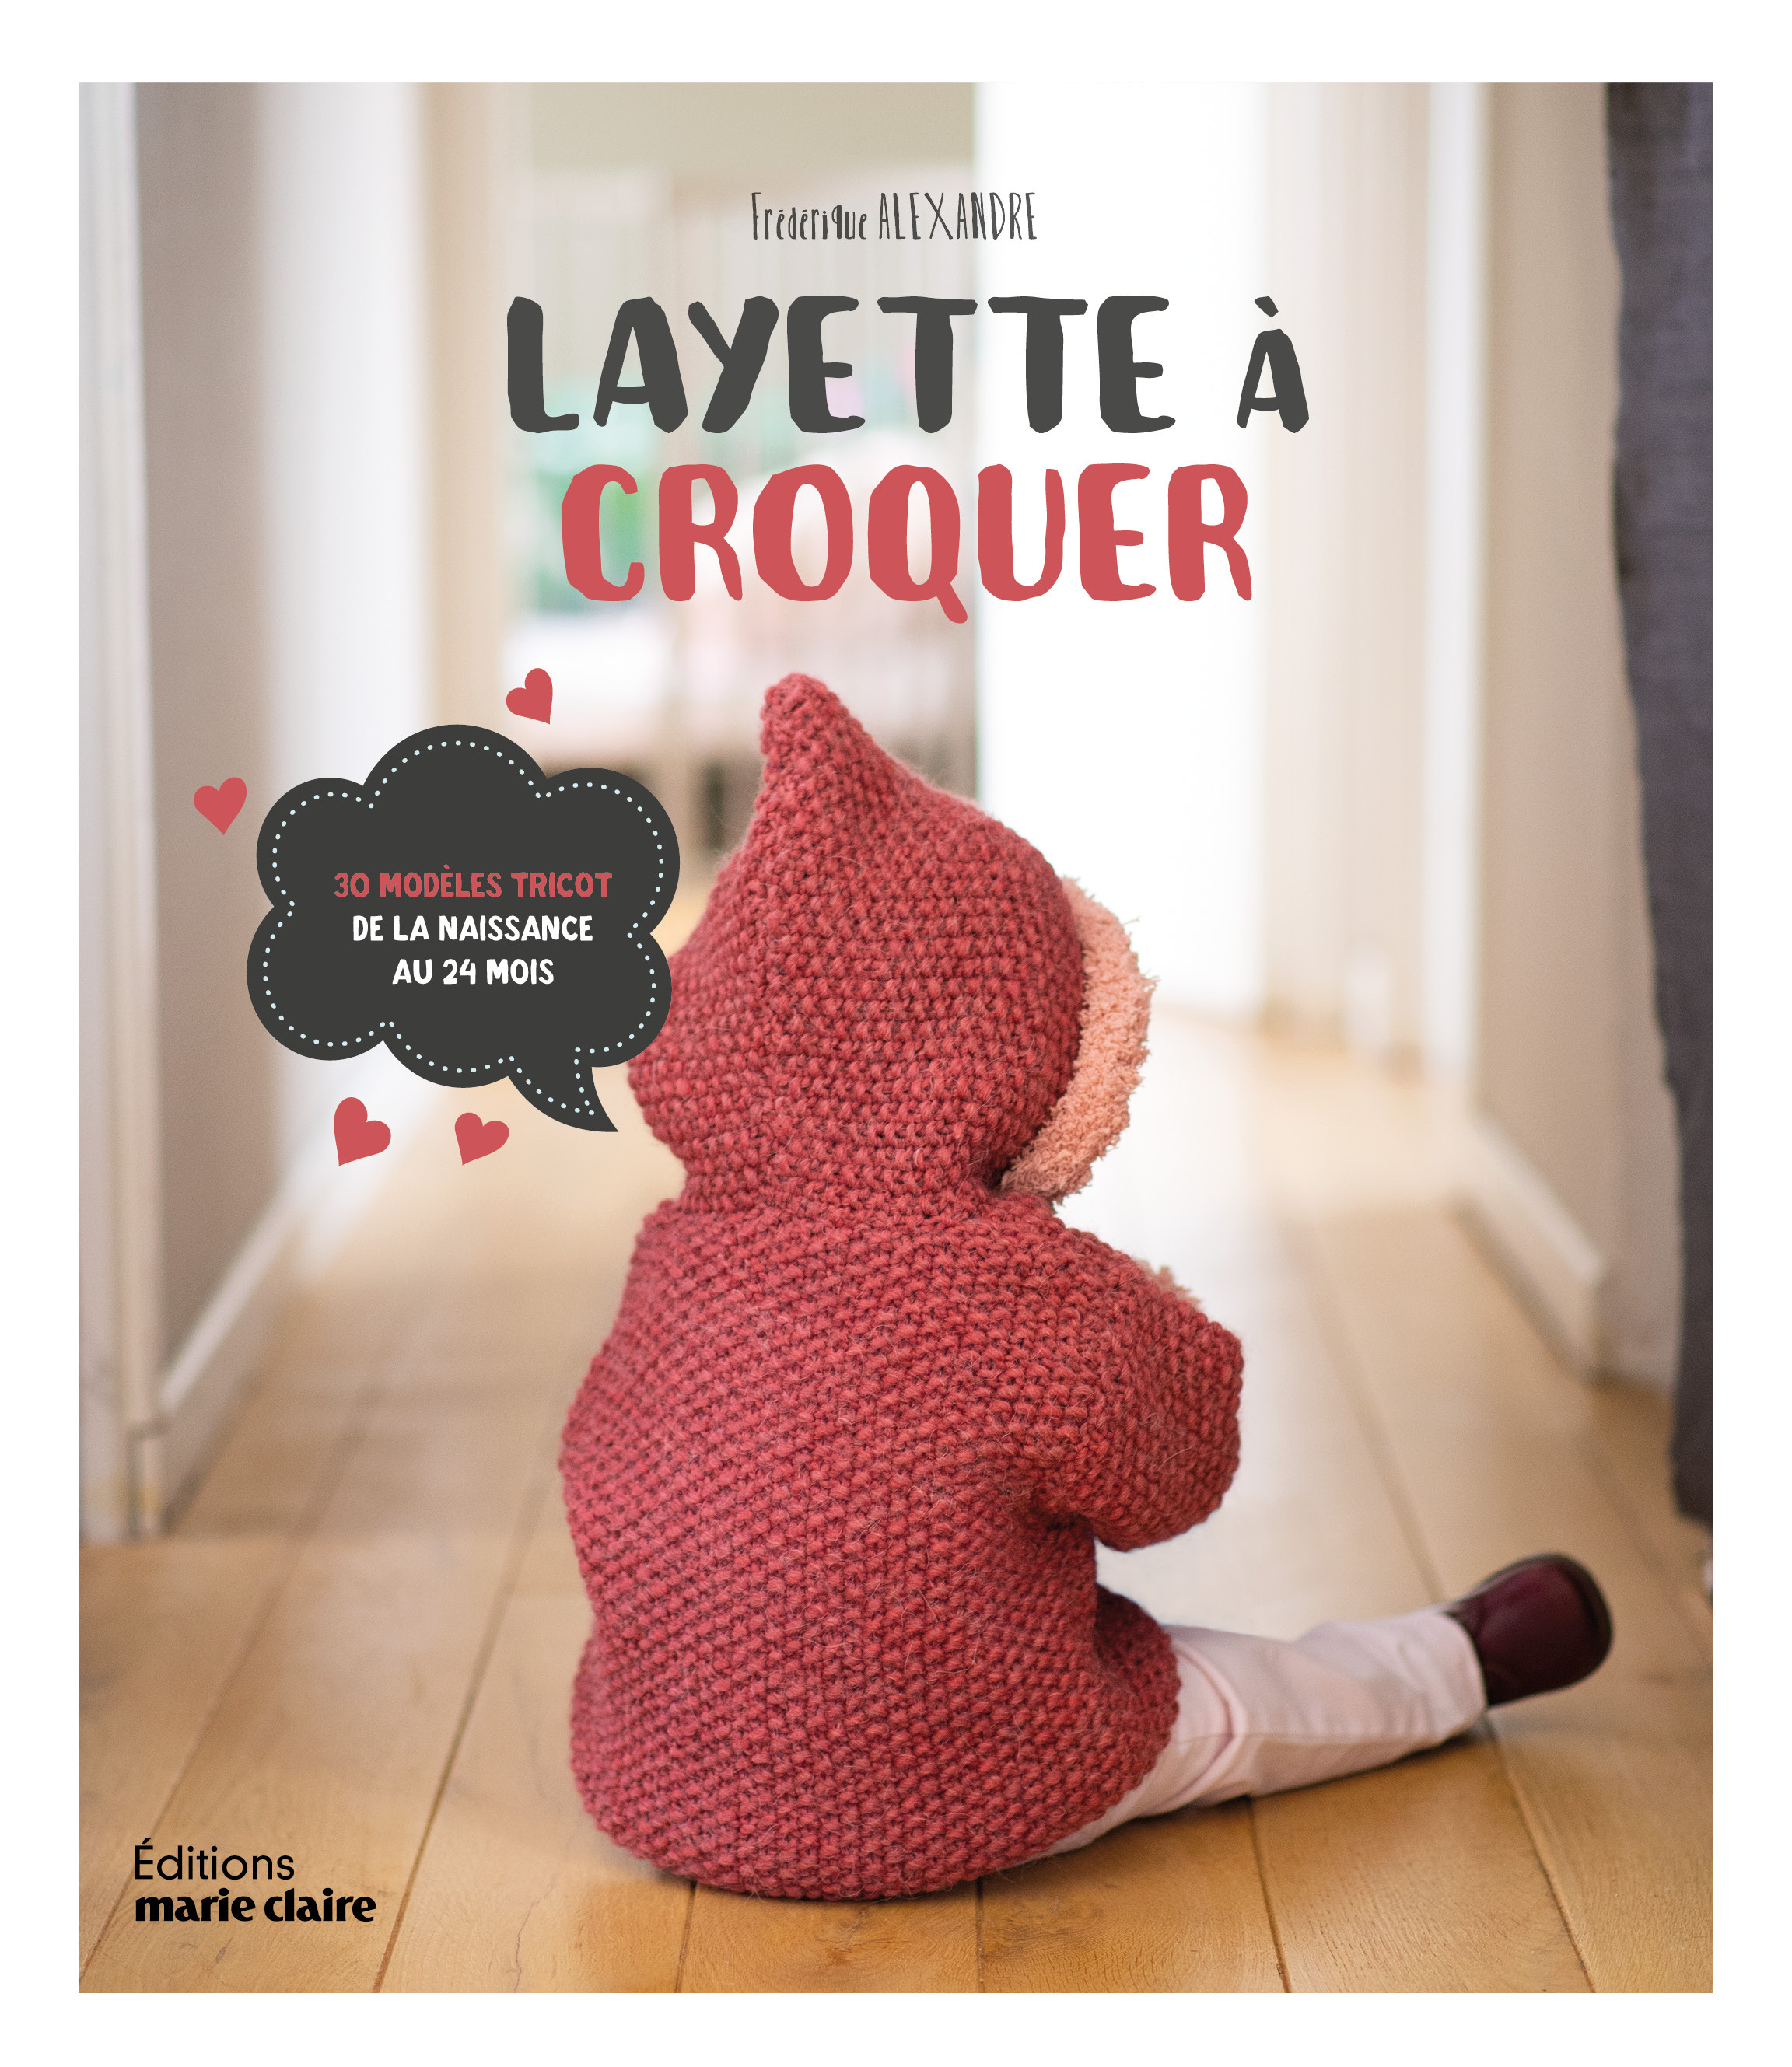 LAYETTE A CROQUER